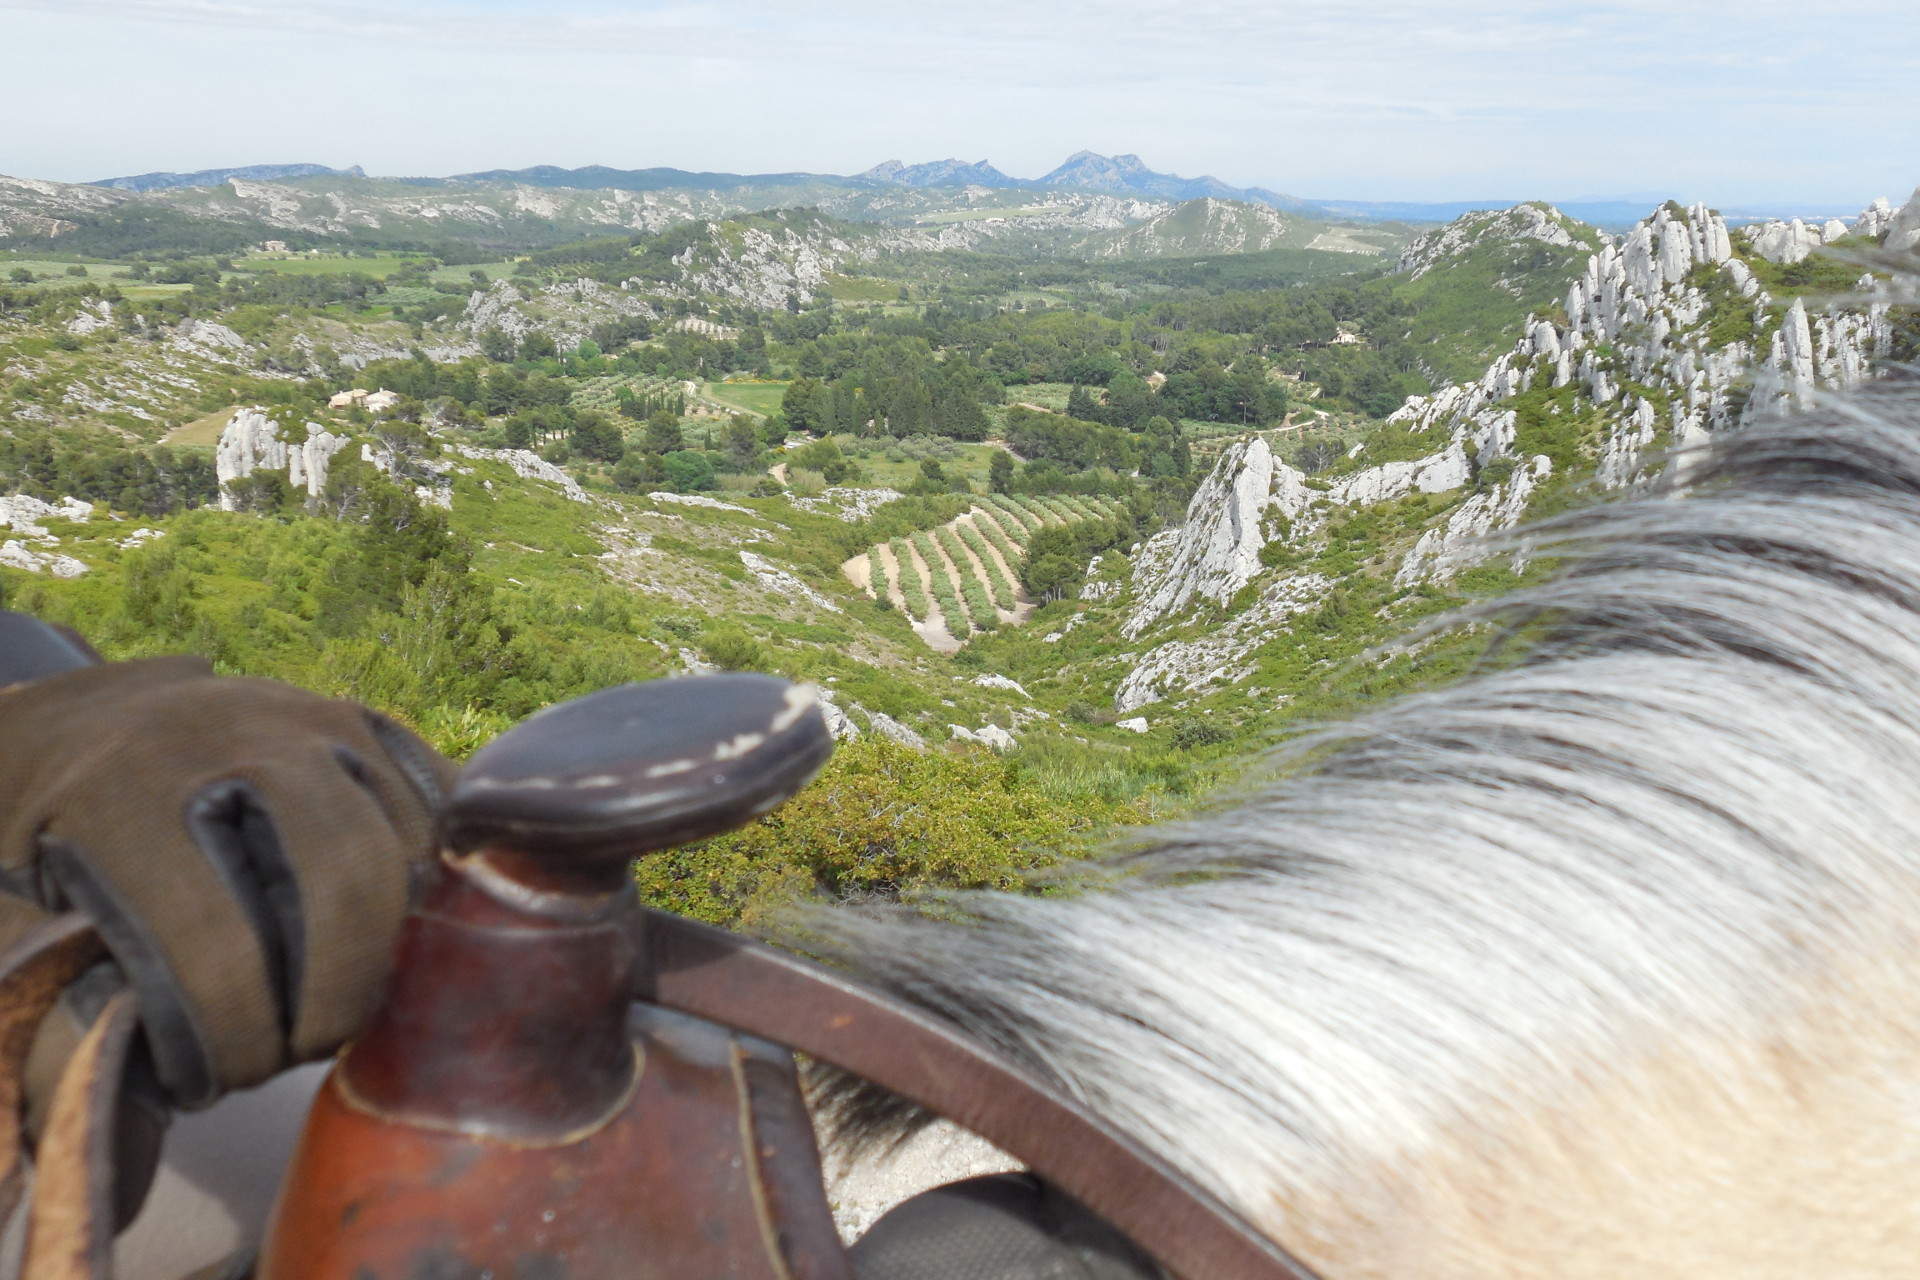 alpilles view from the back of a white horse